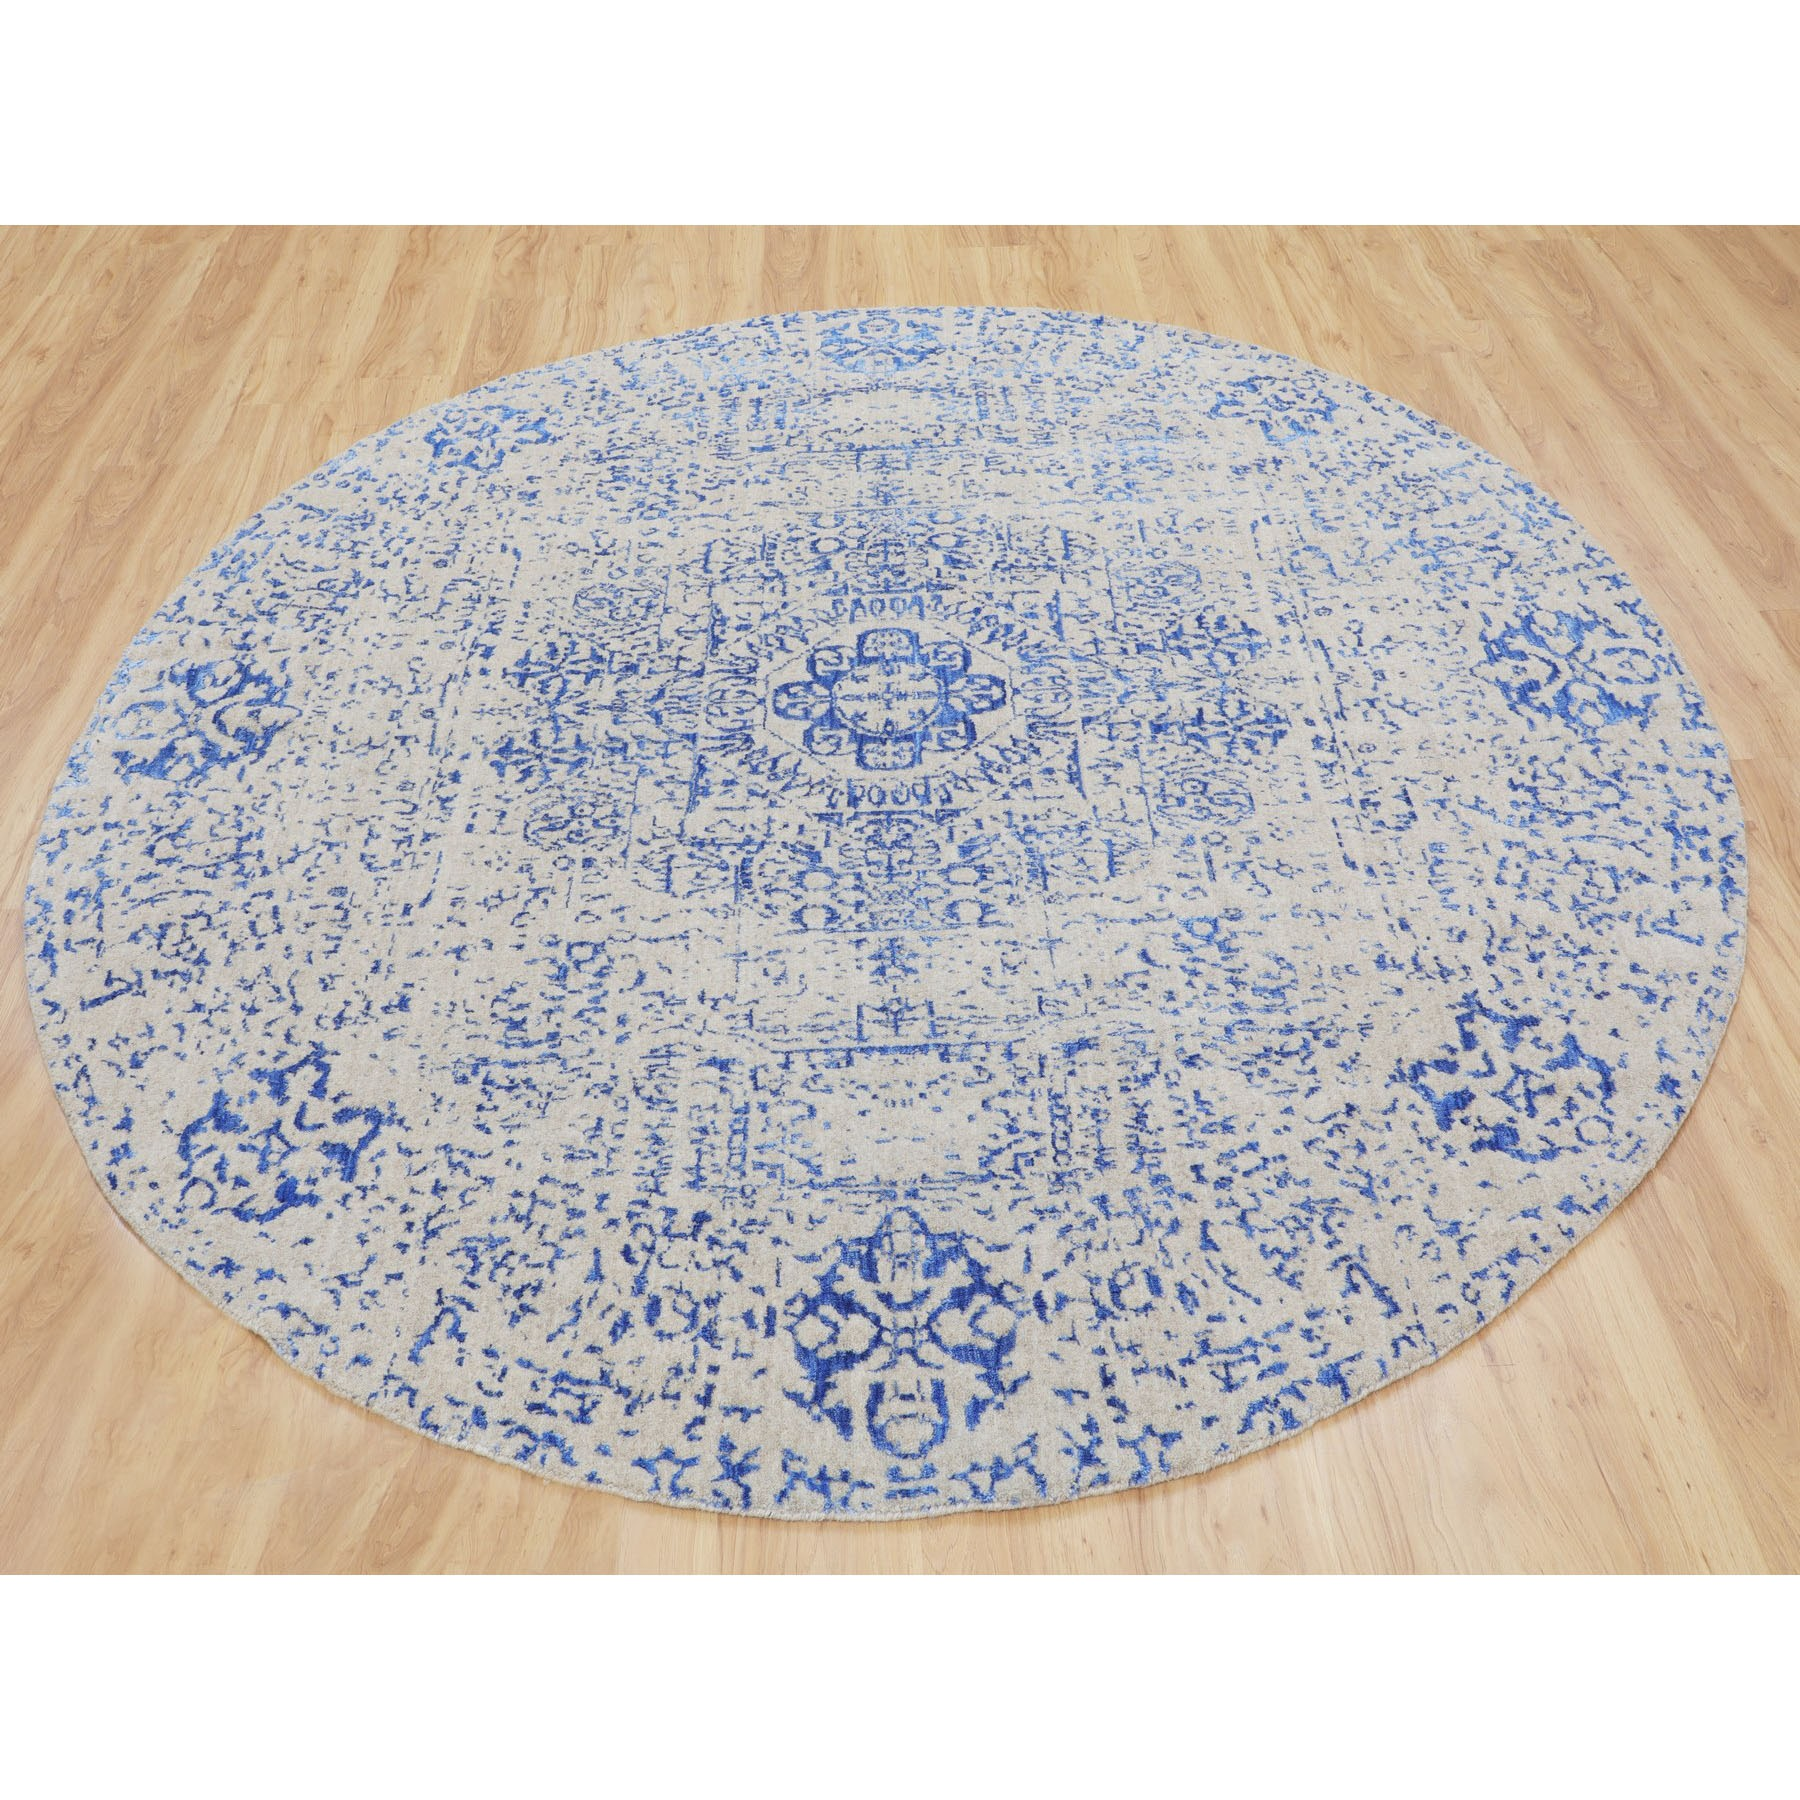 8-x8- Blue Wool and Silk Mamluk Design Jacquard Hand Loomed Round Oriental Rug